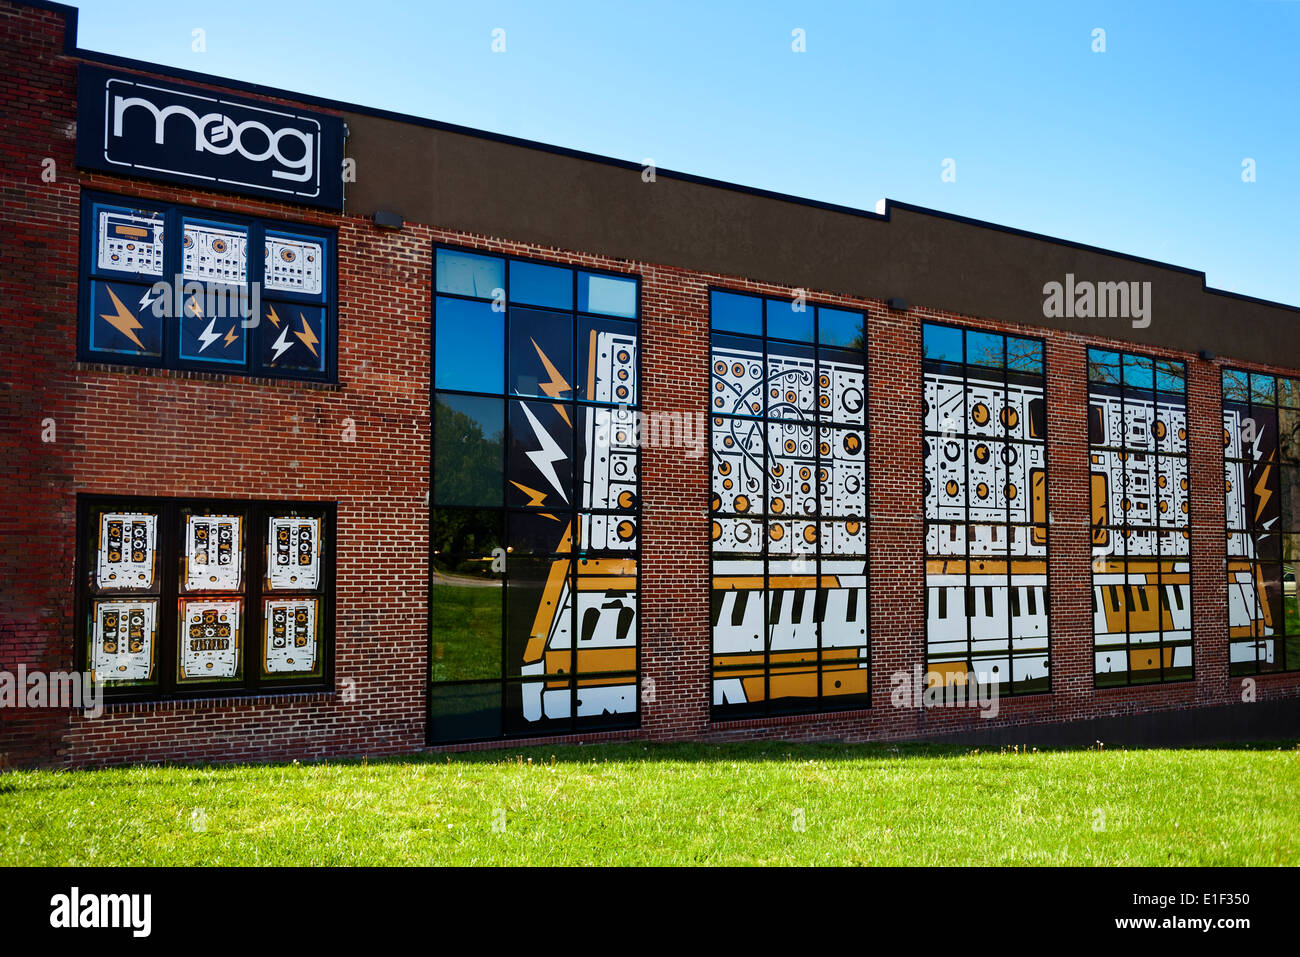 The MOOG Synthesizer Factory in Asheville North Carolina - Stock Image